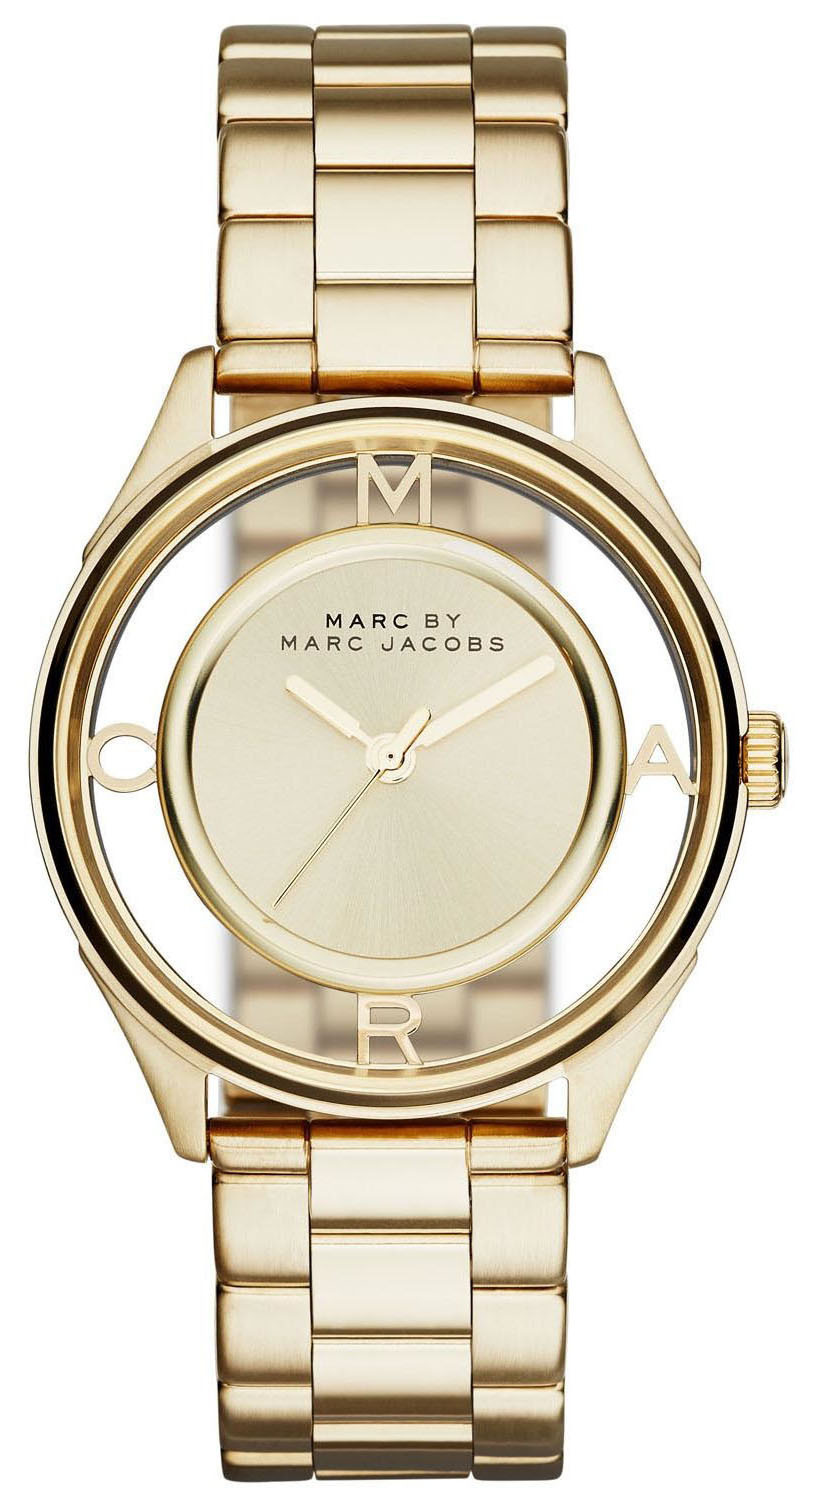 Marc by Marc Jacobs Dress Damklocka MBM3413 Gulguldstonad/Gulguldtonat - Marc by Marc Jacobs